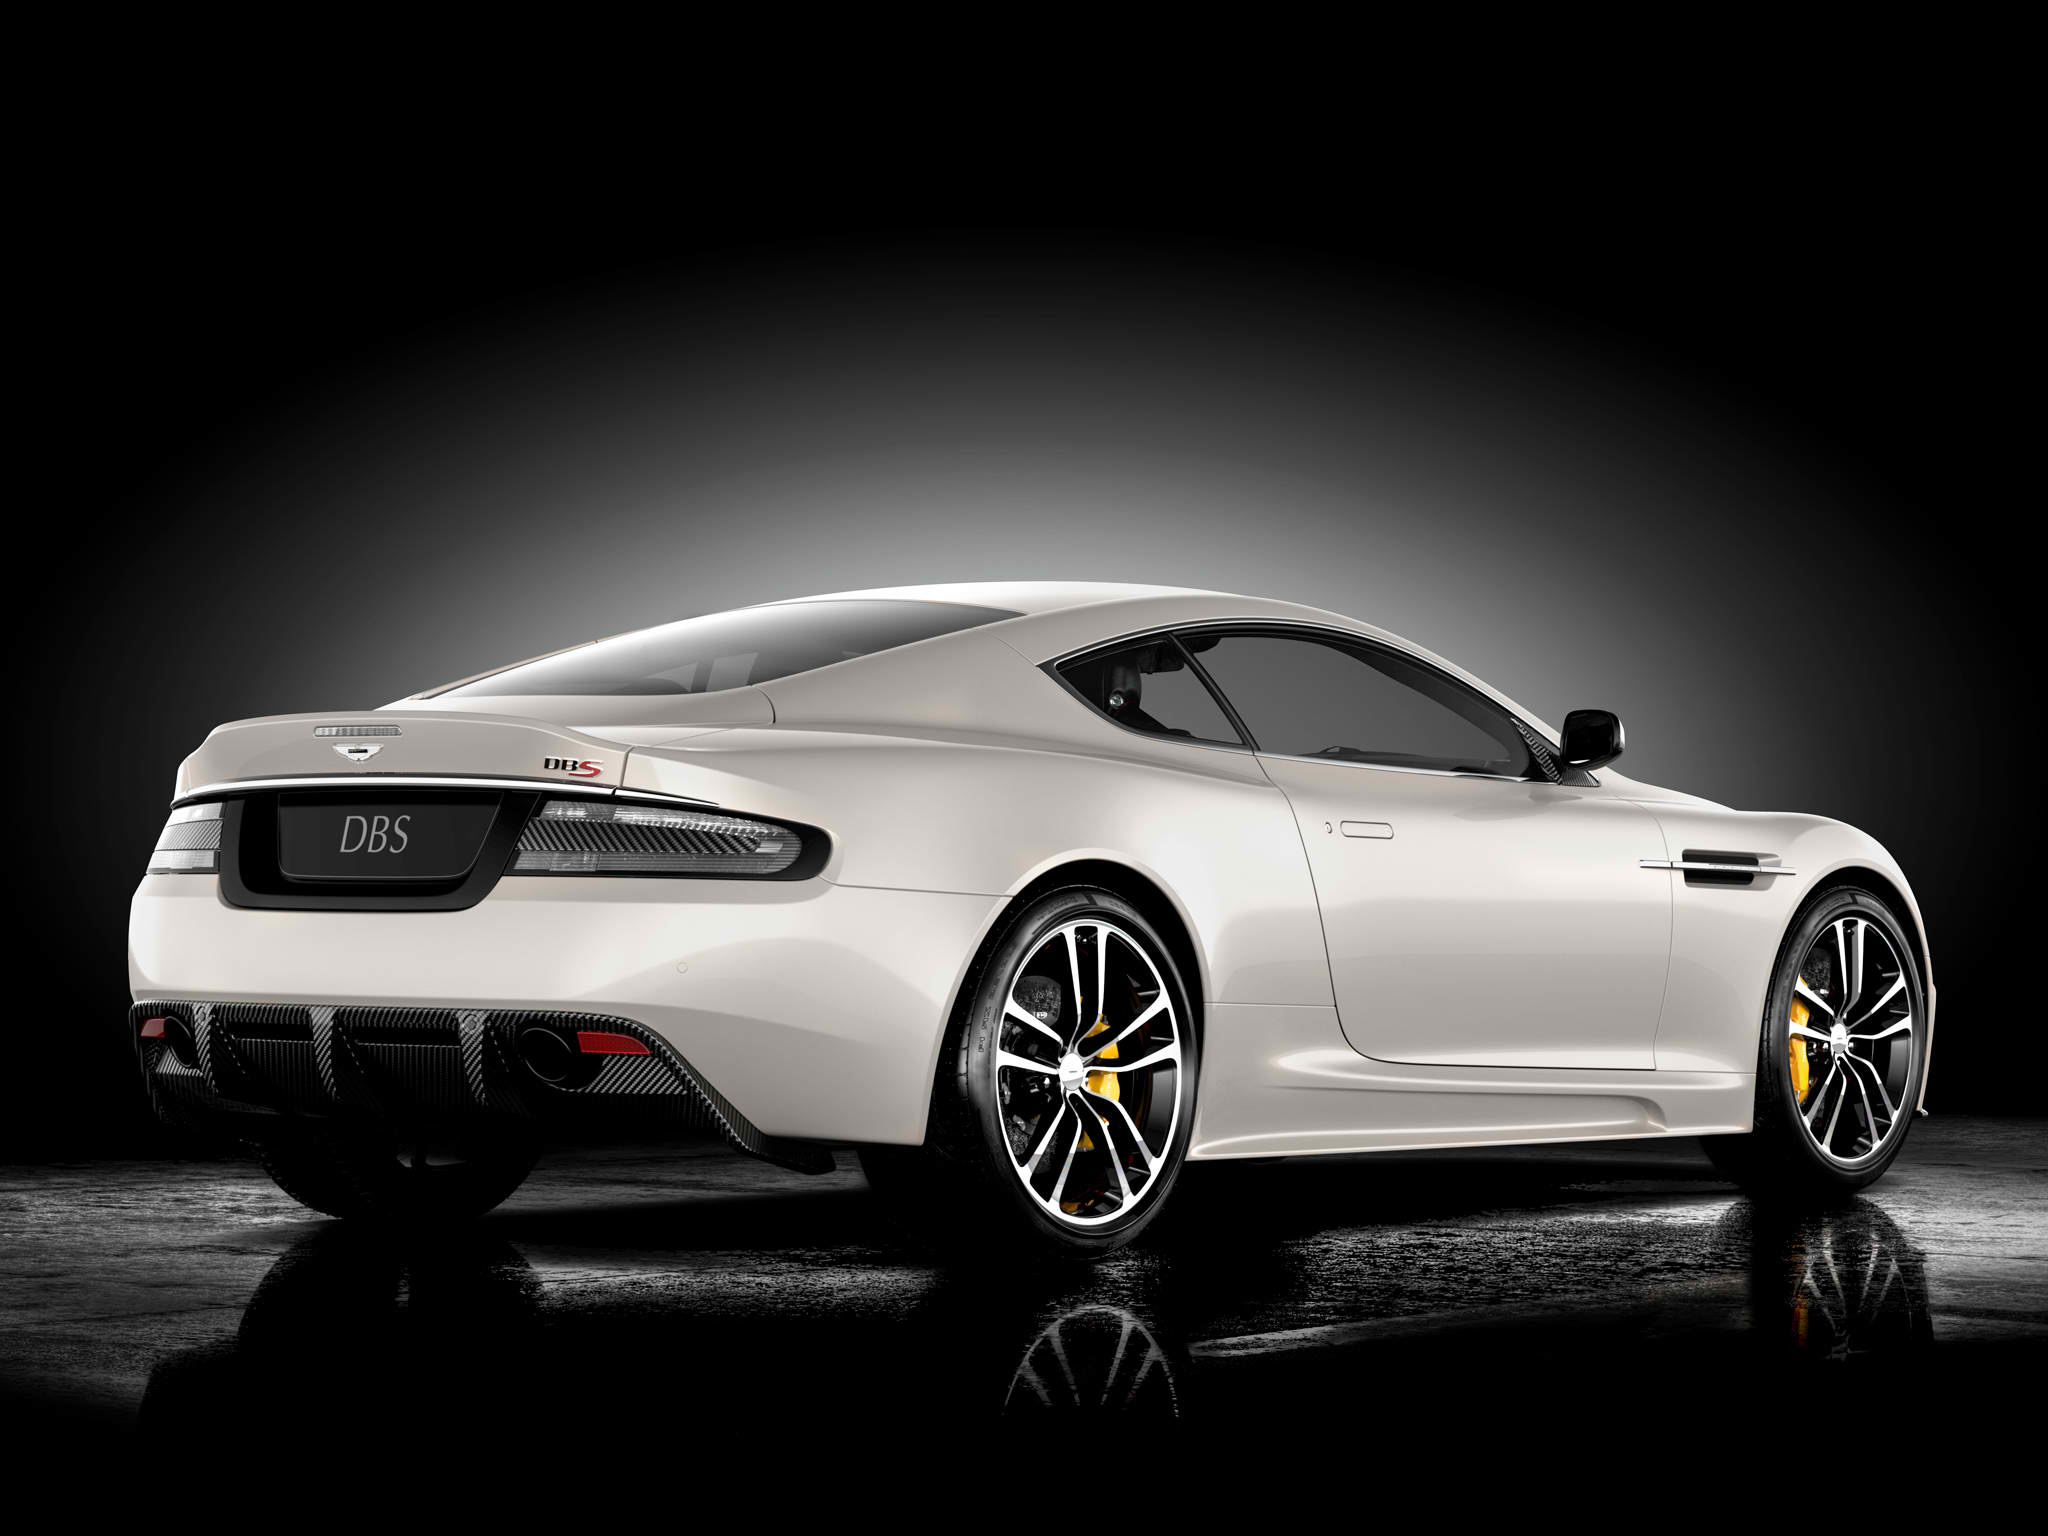 Aston Martin DBS Ultimate Wallpapers Car wallpapers HD 2048x1536